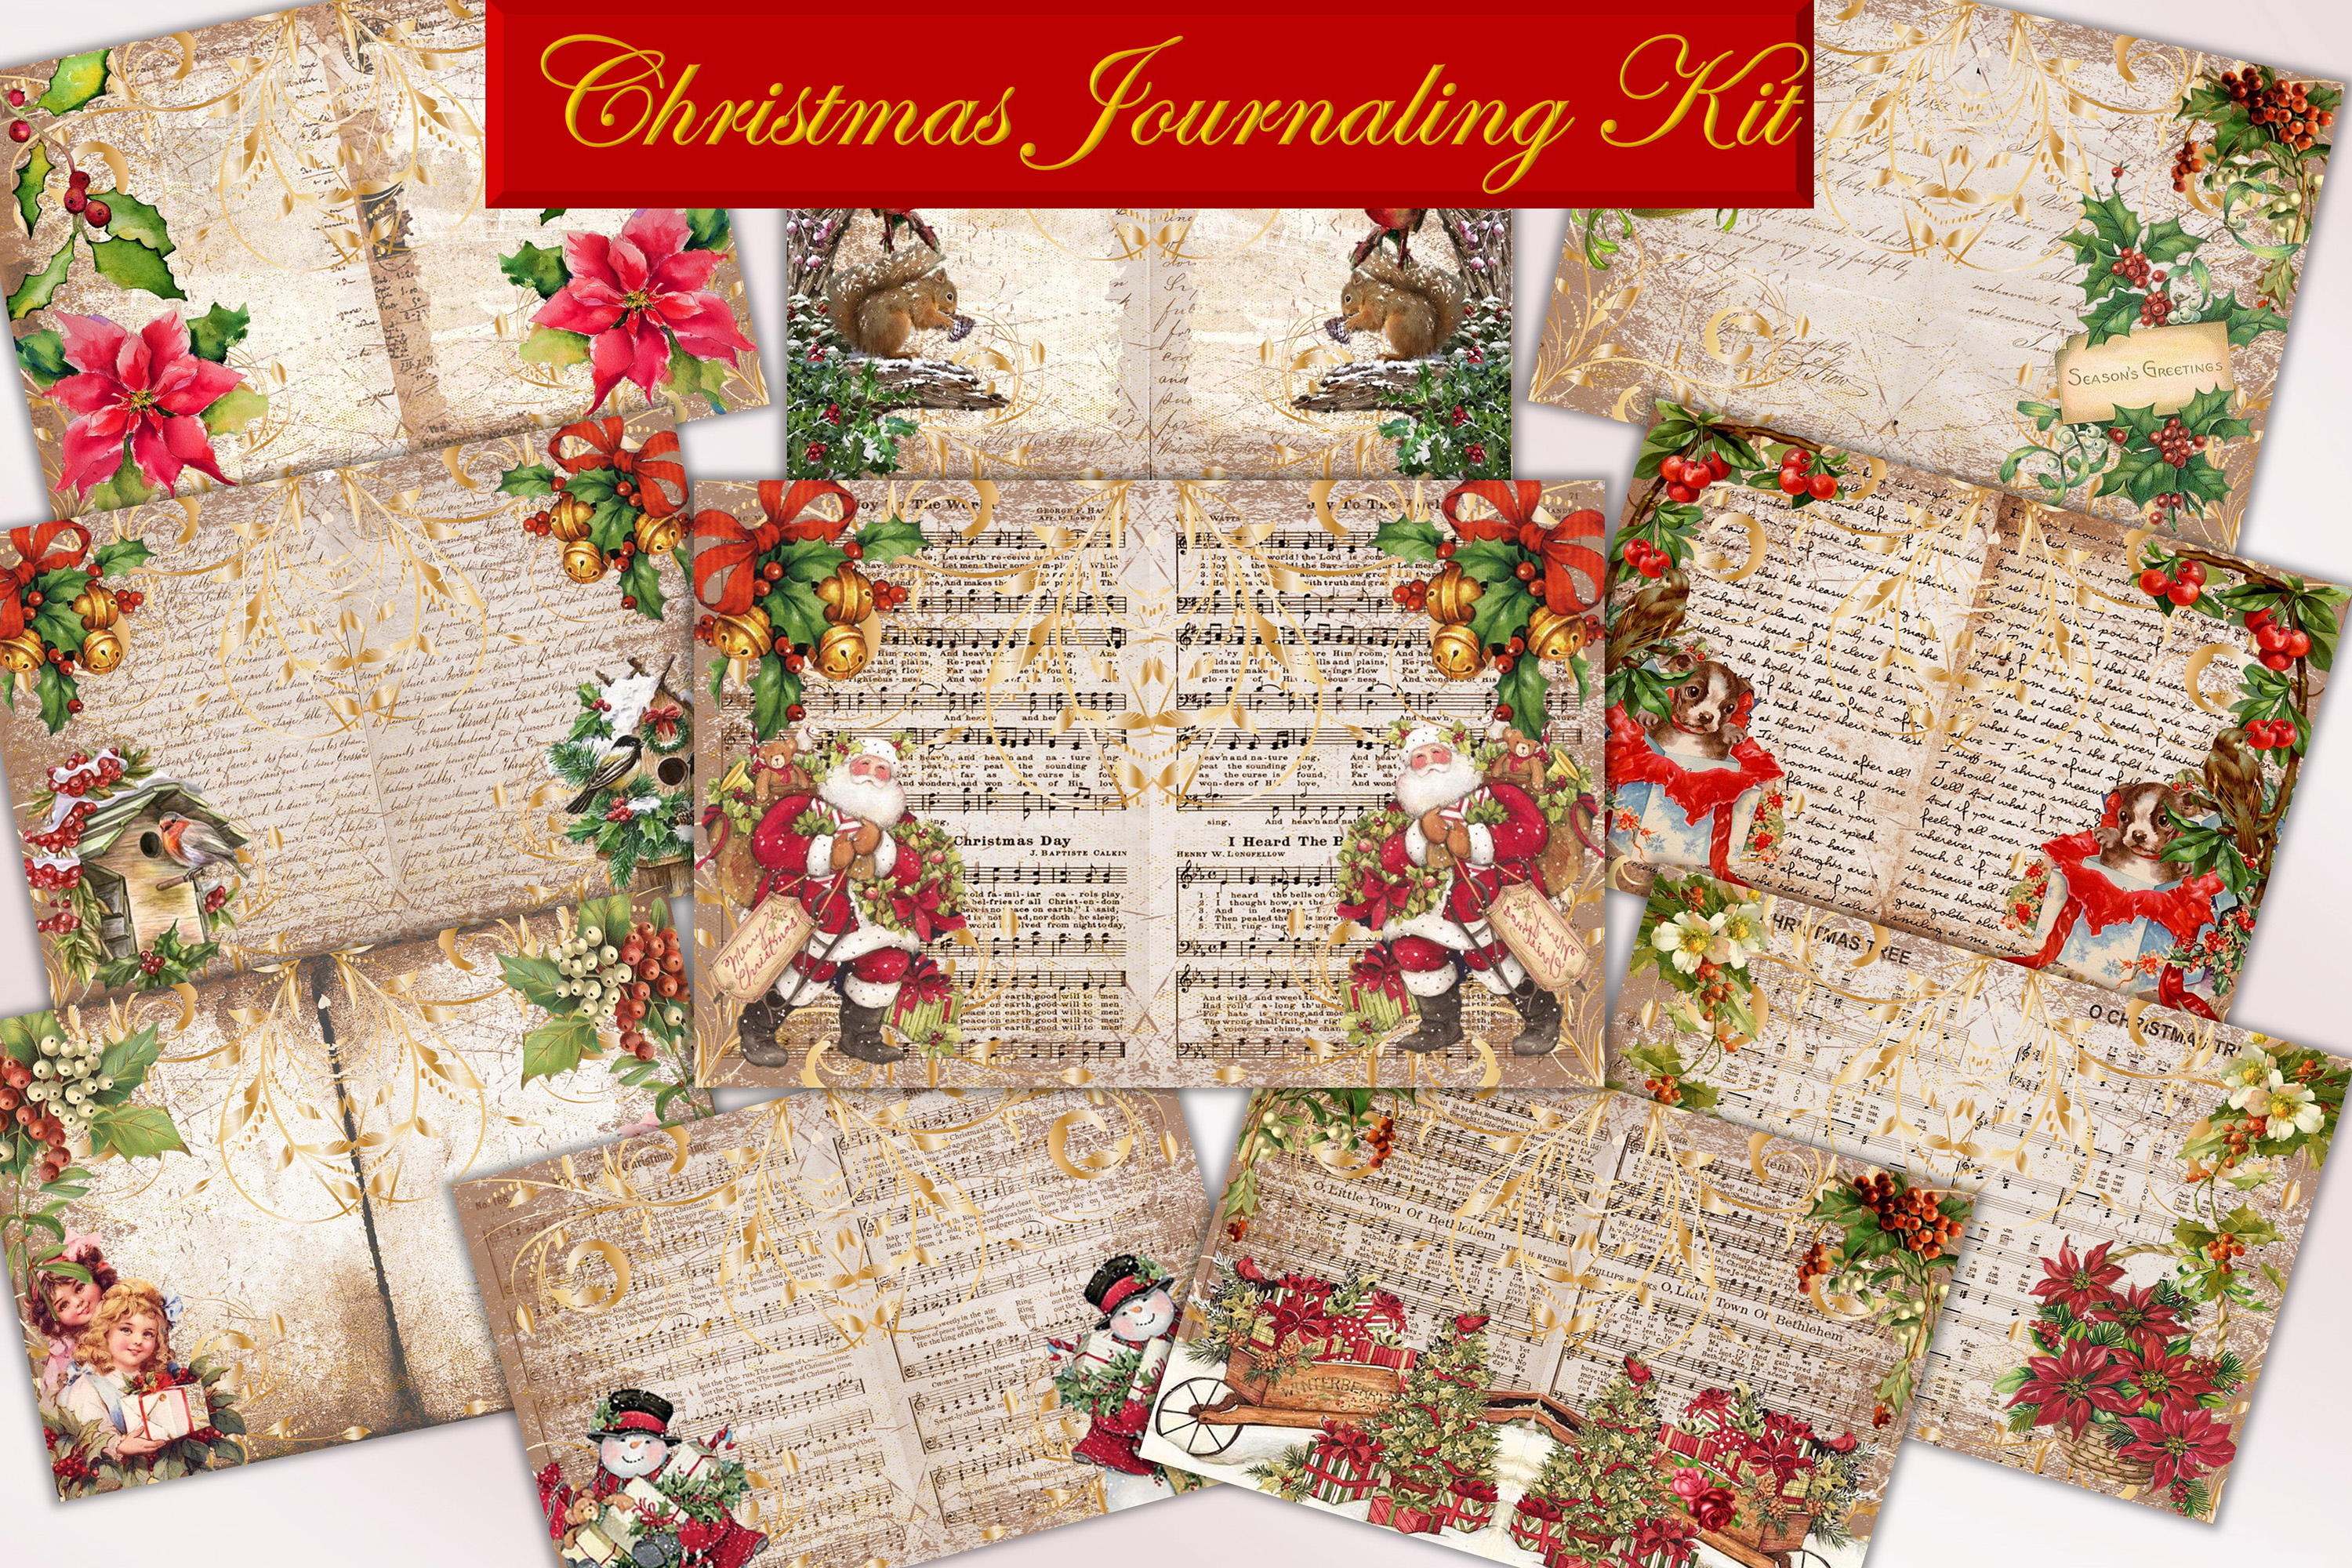 Download Free Vintage Christmas Journal Kit Ephemera Grafik Von The Paper for Cricut Explore, Silhouette and other cutting machines.